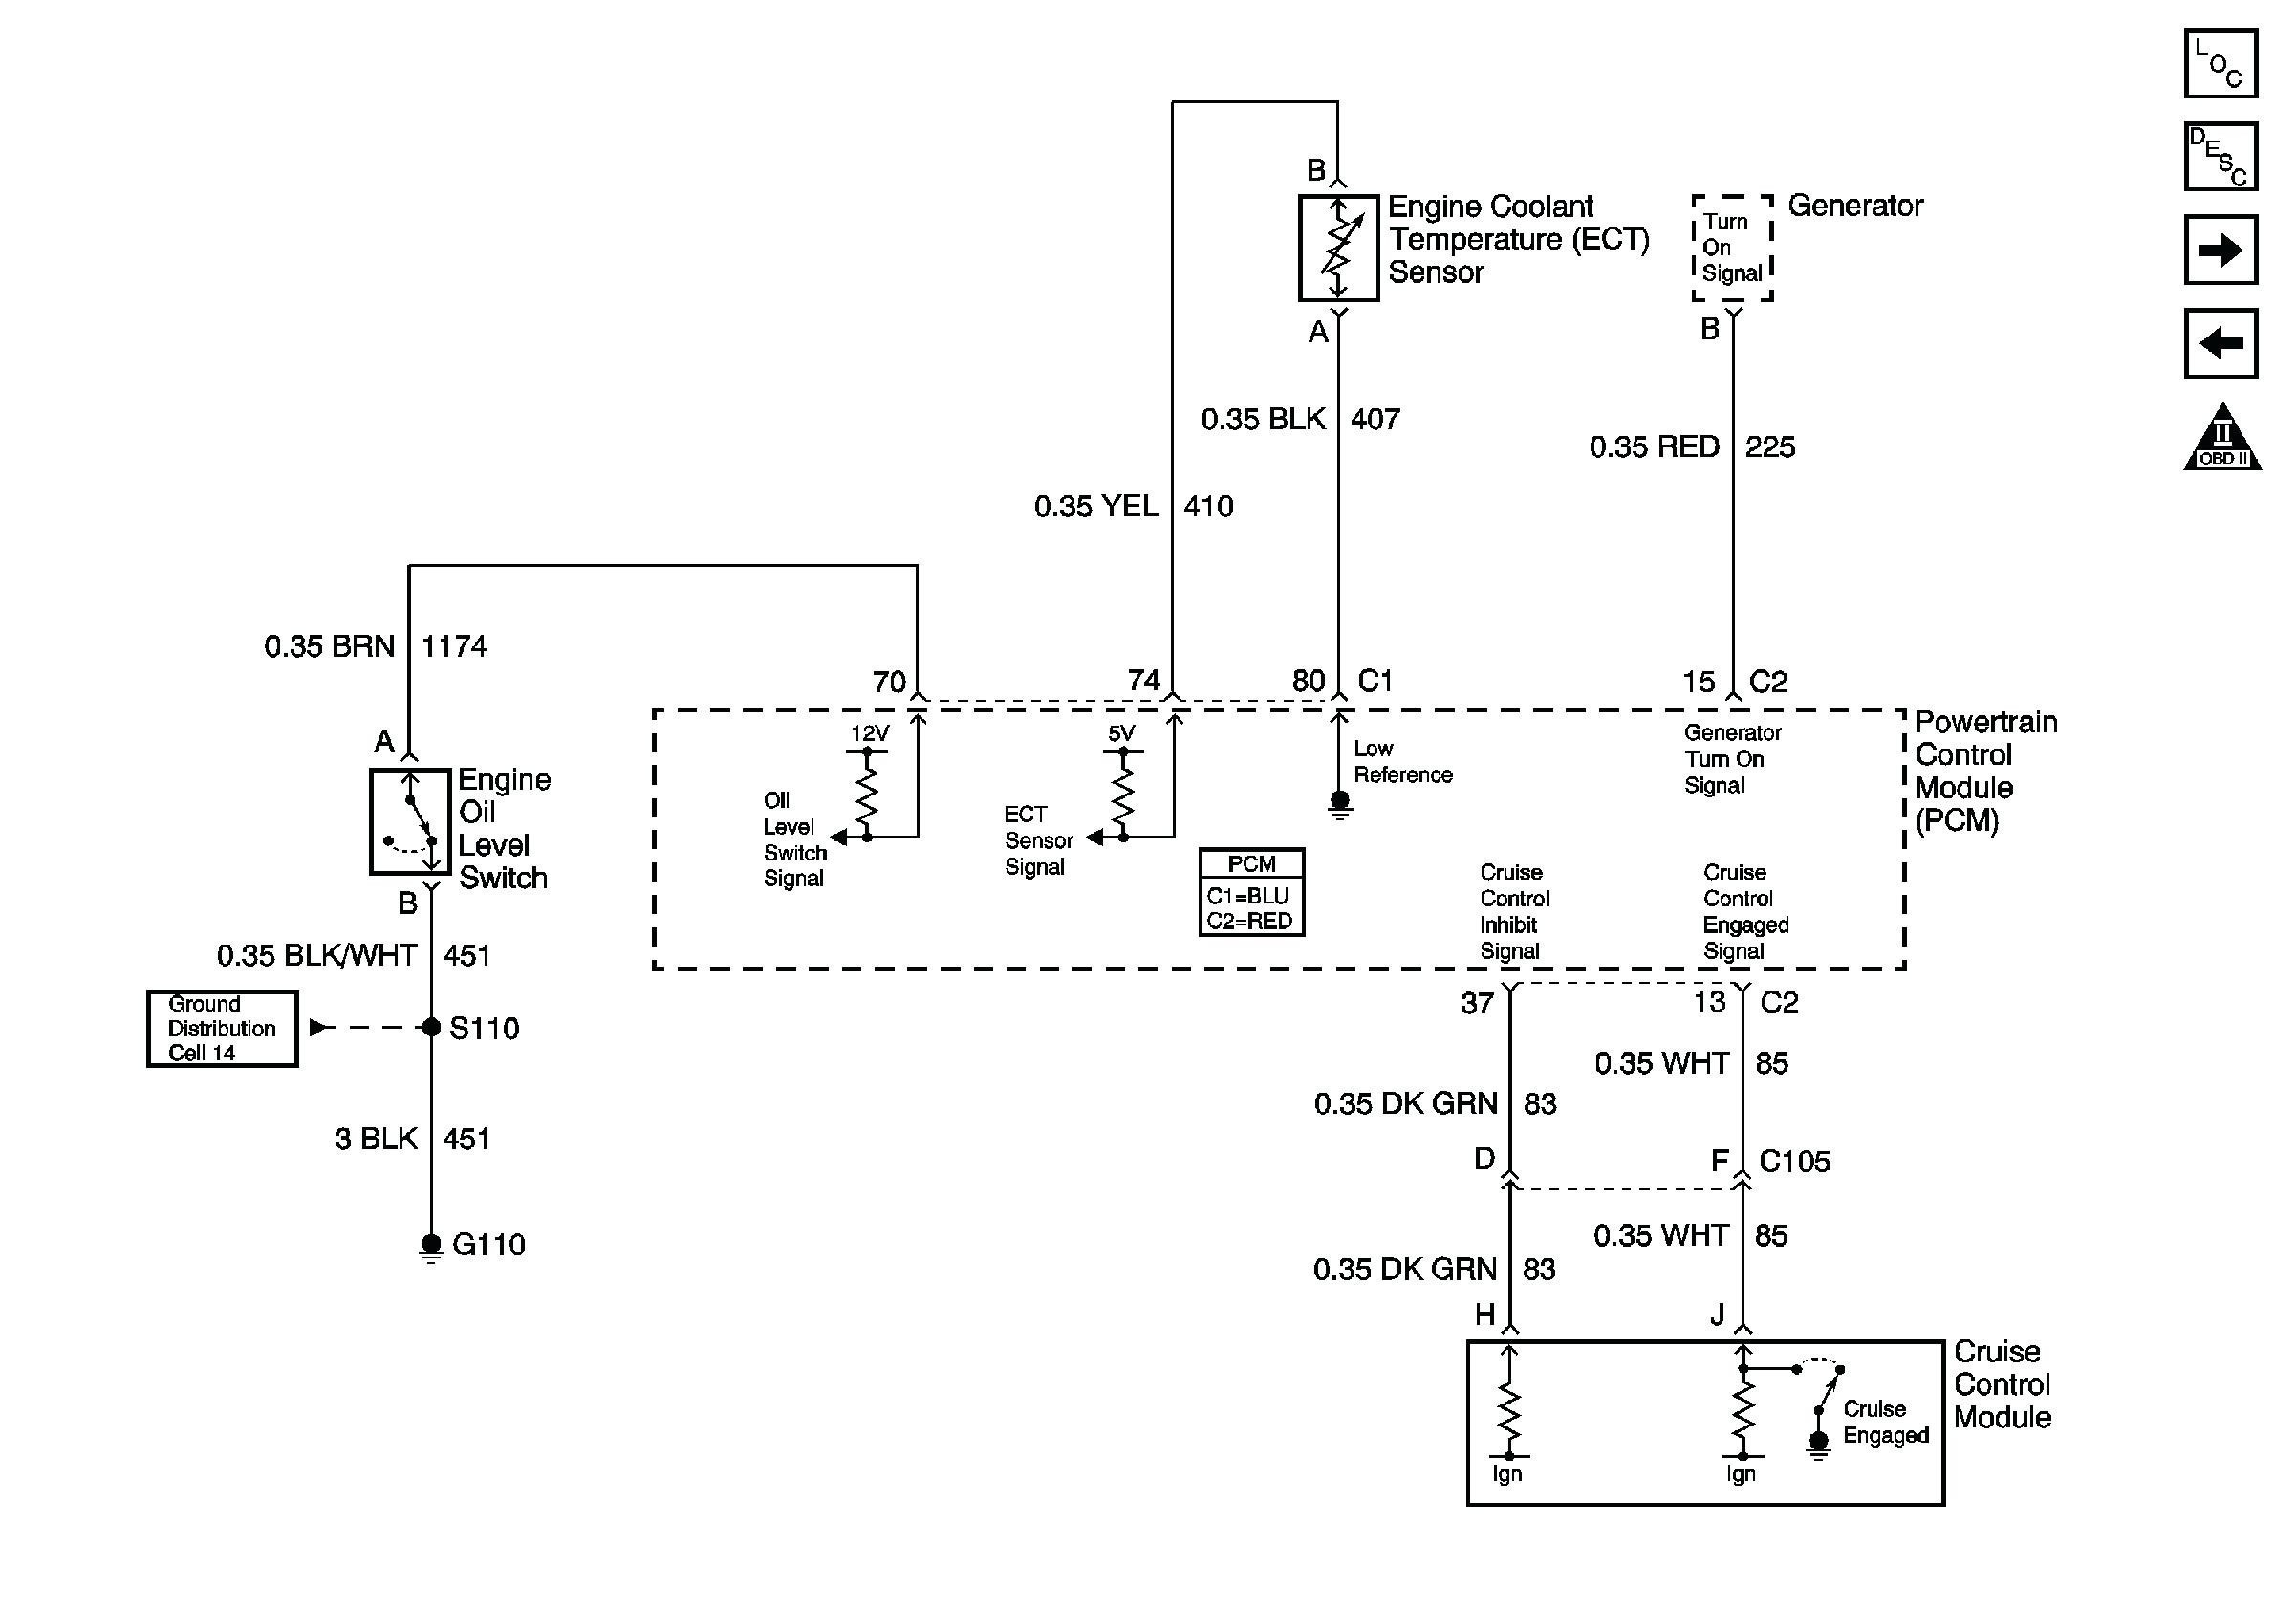 Ac Delco 4 Wire Alternator Wiring Diagram Gallery Boss Bv7942 Car Stereo Harness Download For Valid